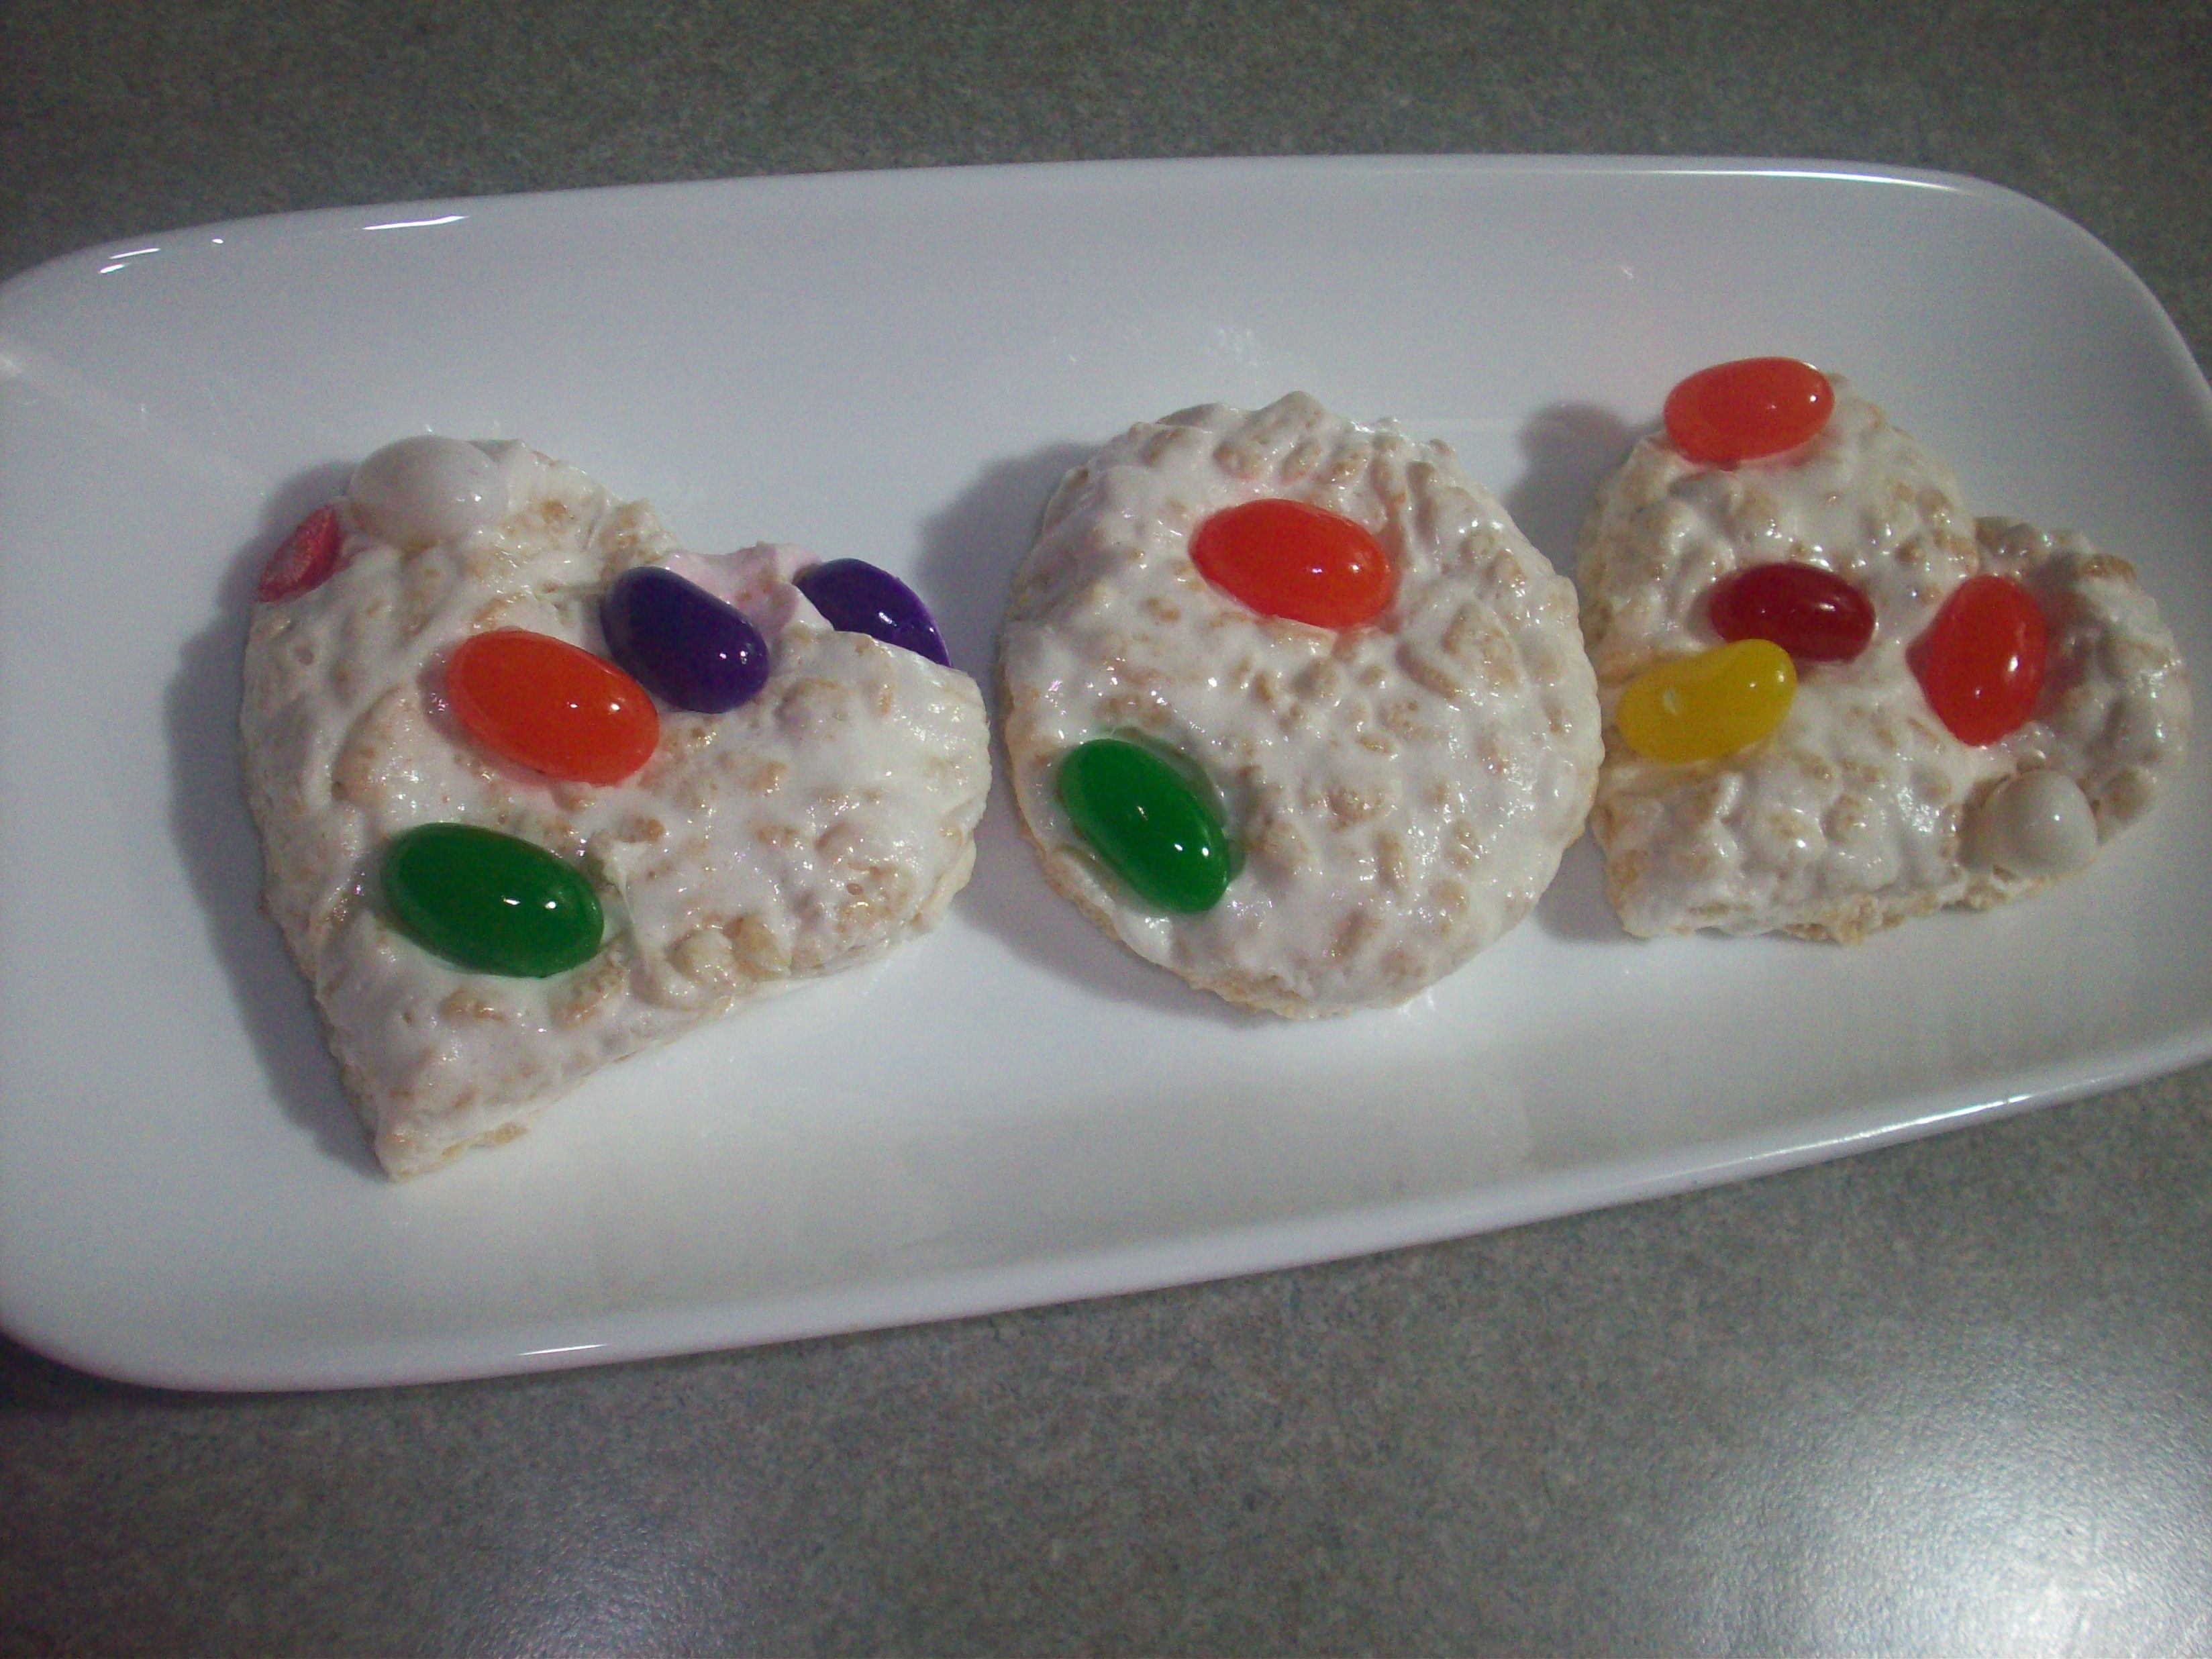 http://foodloader.net/cutie_2010-05-23_Rainbow_Rice_Krispies_Treats.jpg